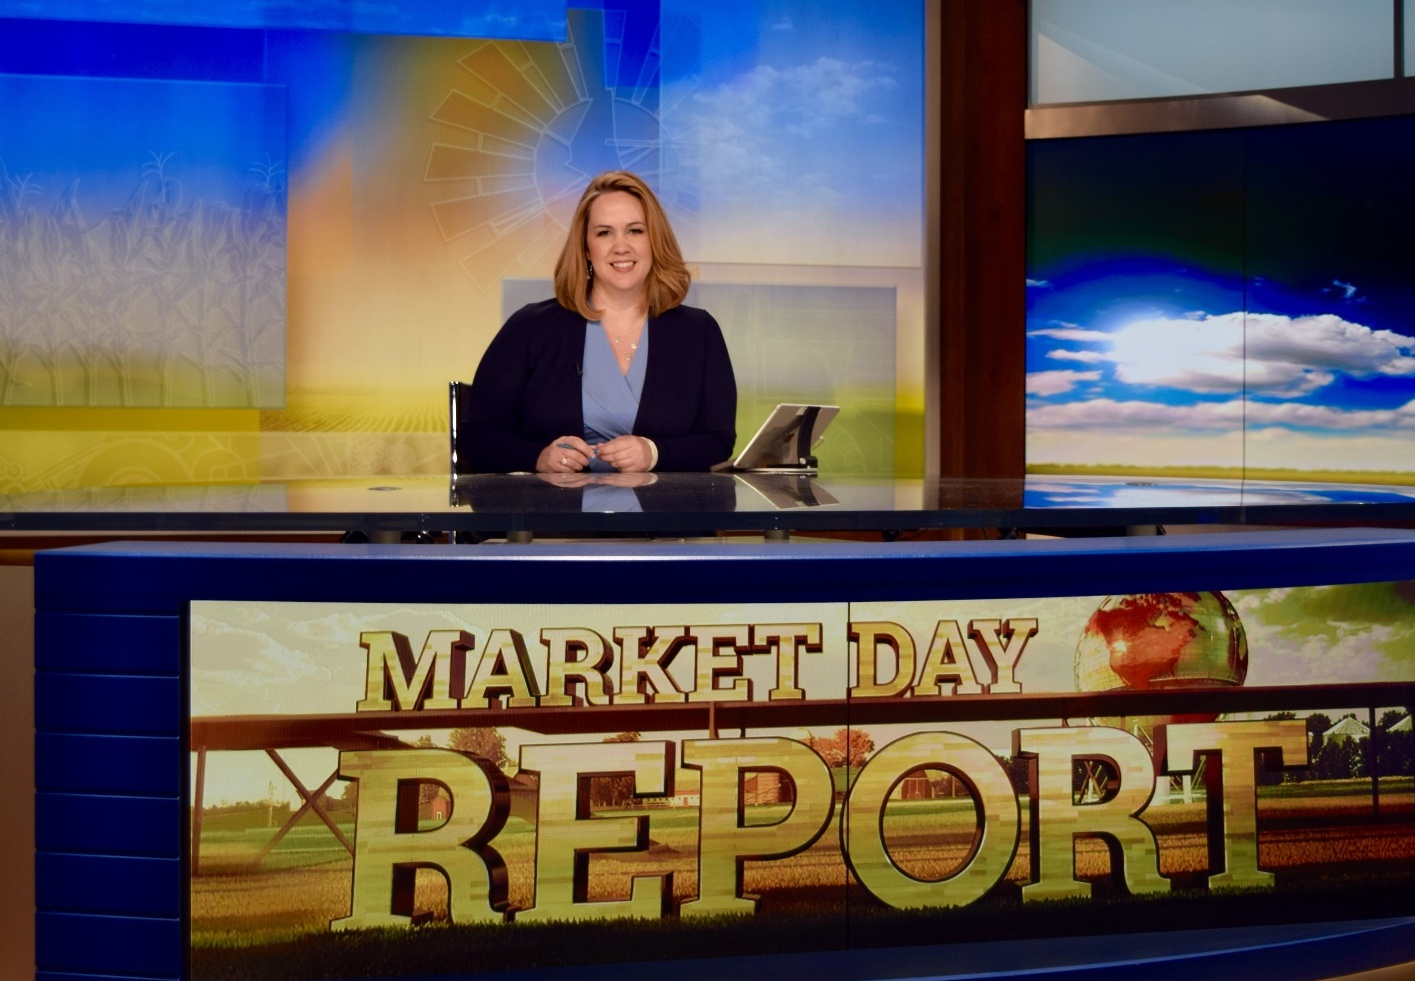 From Washington To RFD TV Anchor Desk In Nashville